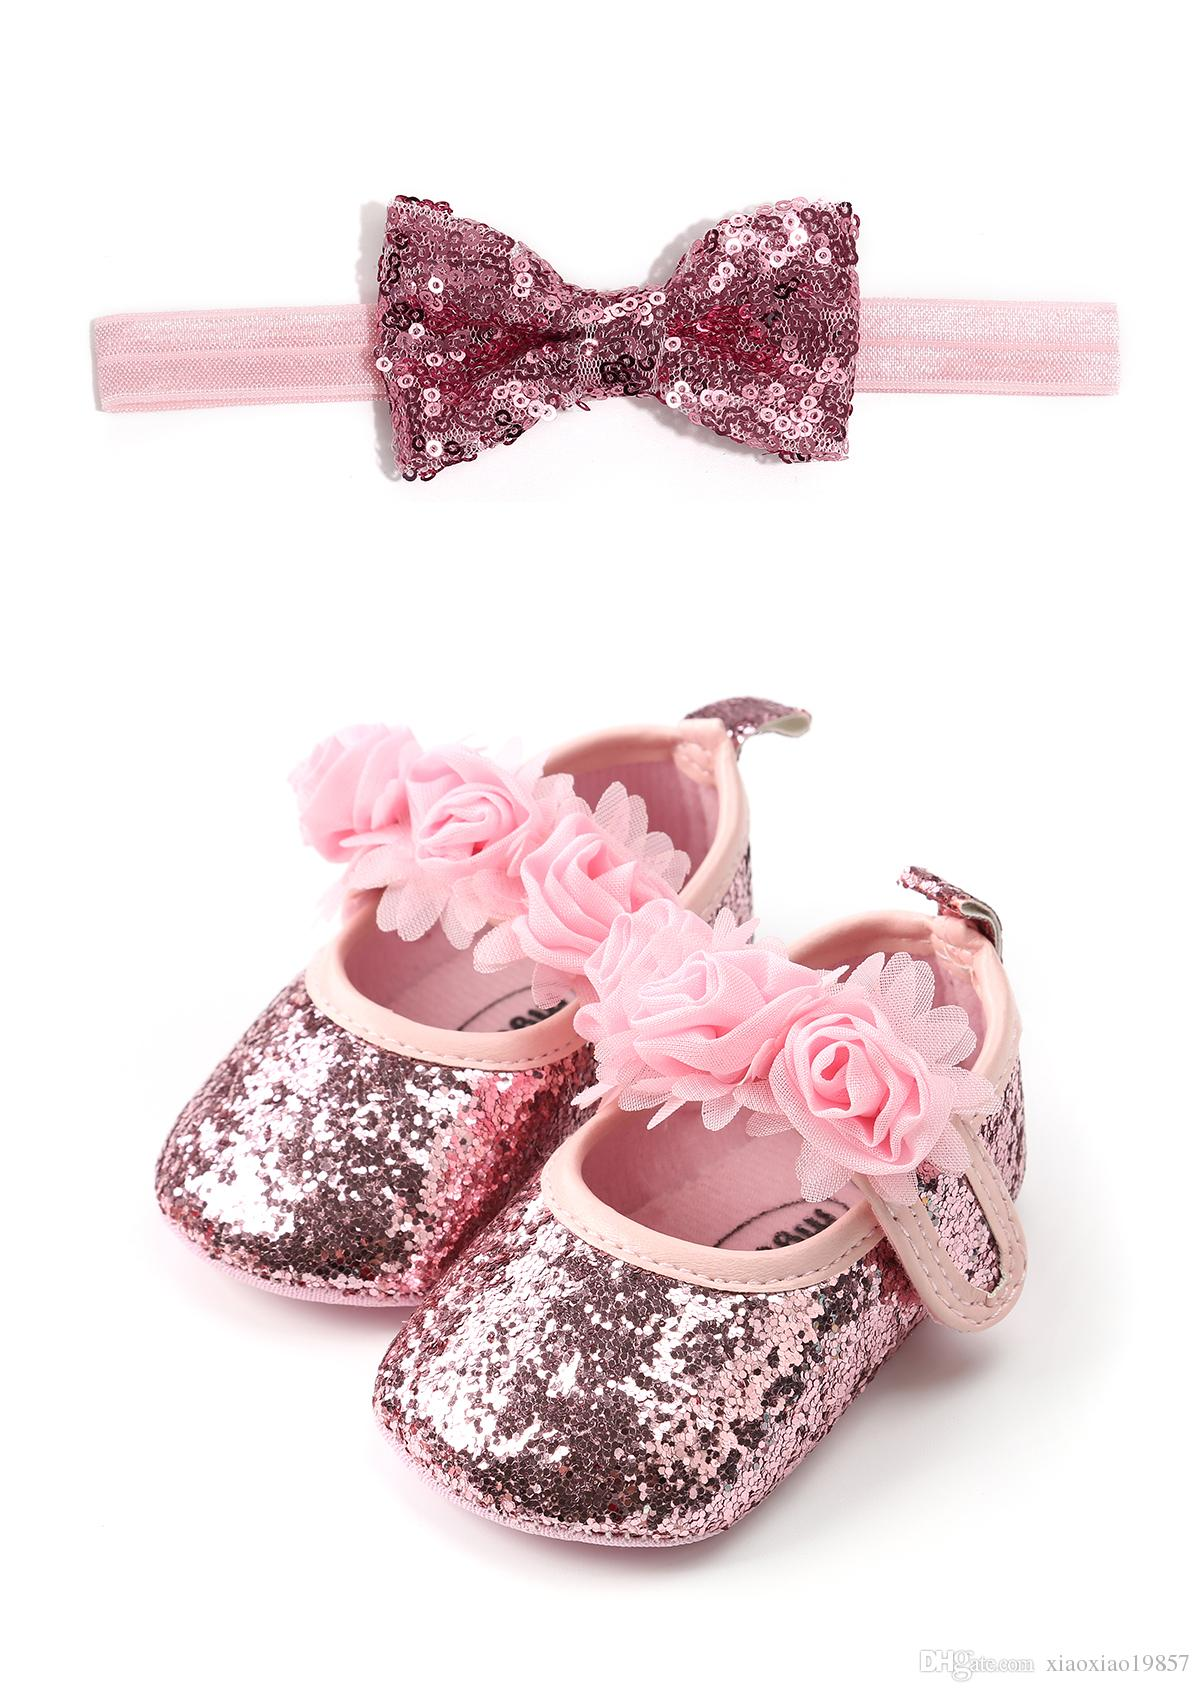 2019 Fashion Bling PU Leather Baby Girl Shoes + Ribbon Elastic Headband Baby  Set Cute 0 18M Newborn First Walker Gift Soft Sole Shoe From Xiaoxiao19857 93067cadd76e